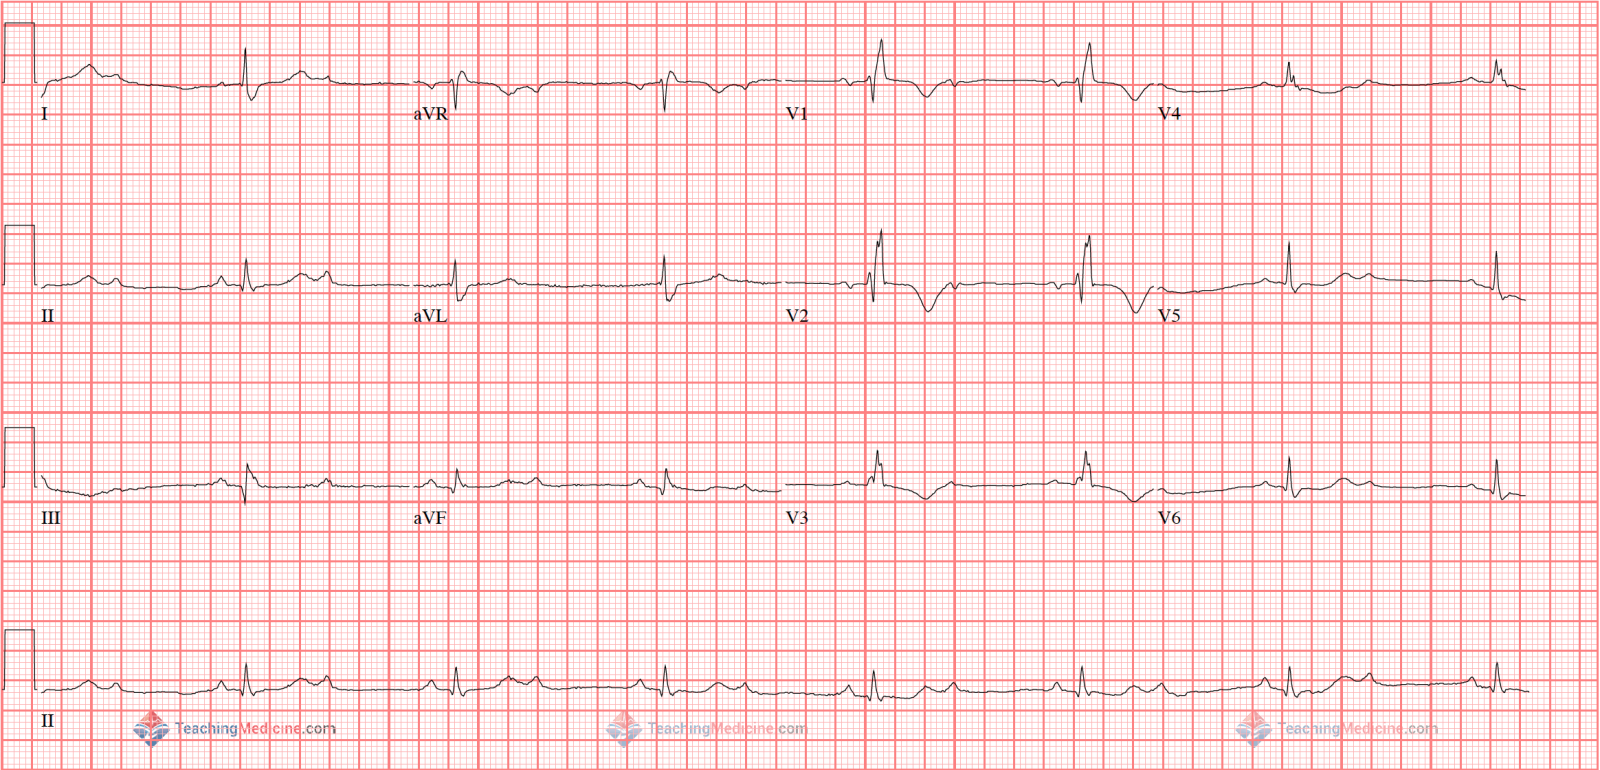 lead hb c png therefore it is impossible to determine if the pr interval is increasing or not and therefore impossible to say for sure if it is a type 1 or type 2 block